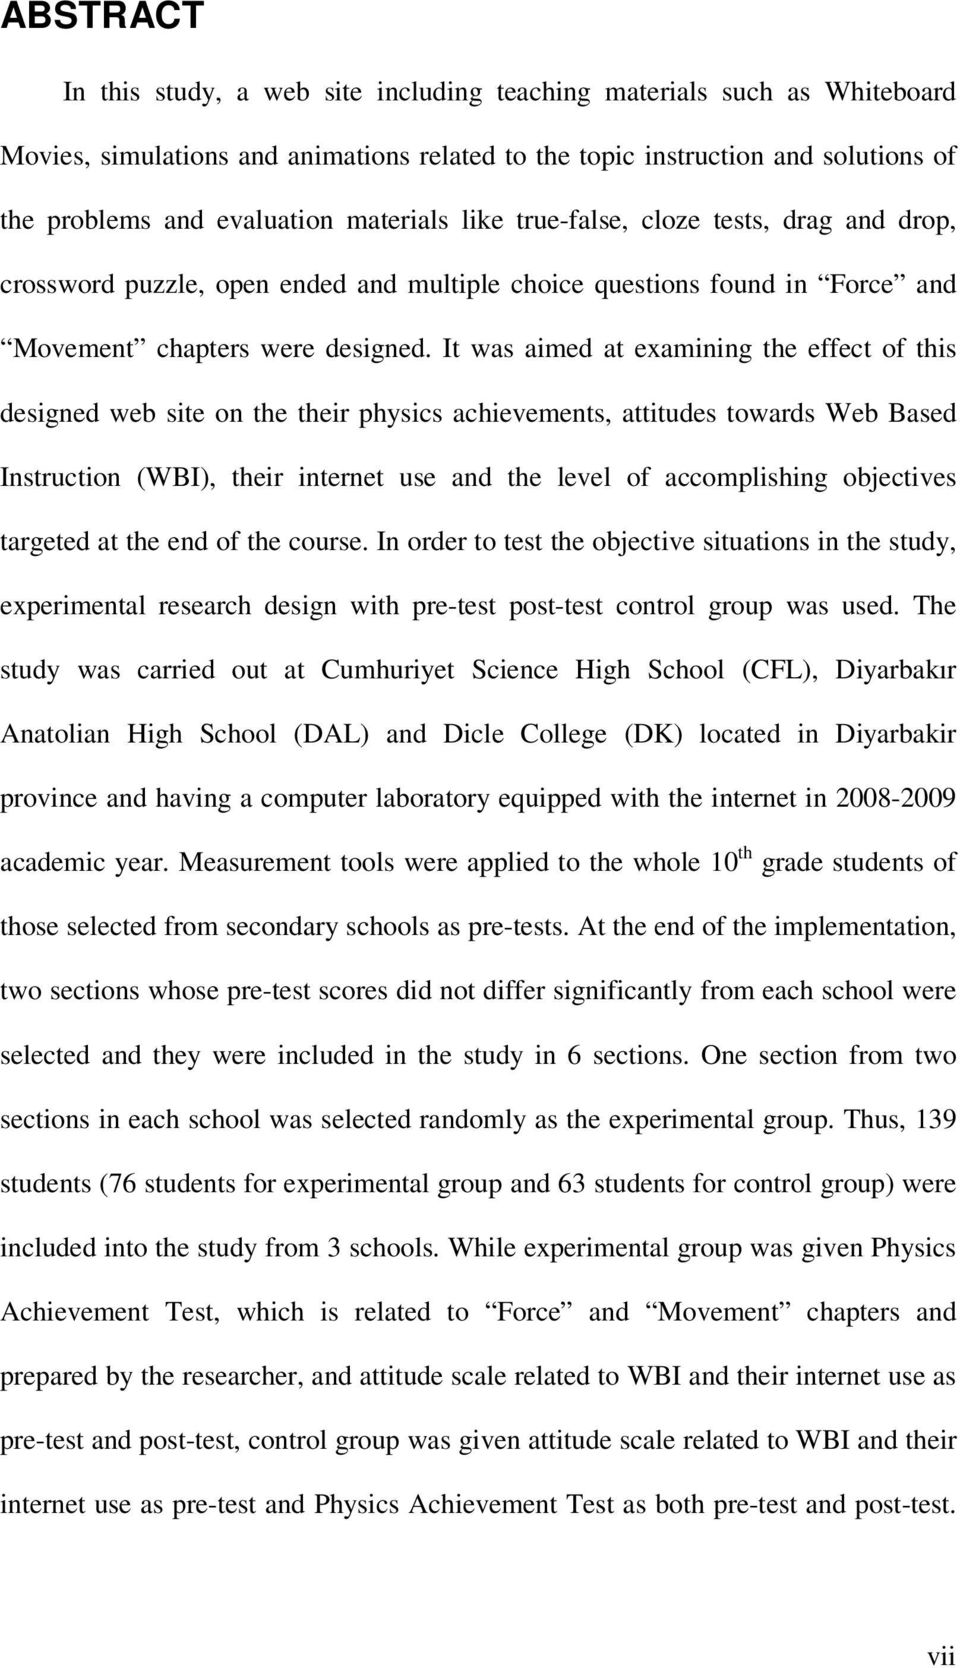 It was aimed at examining the effect of this designed web site on the their physics achievements, attitudes towards Web Based Instruction (WBI), their internet use and the level of accomplishing